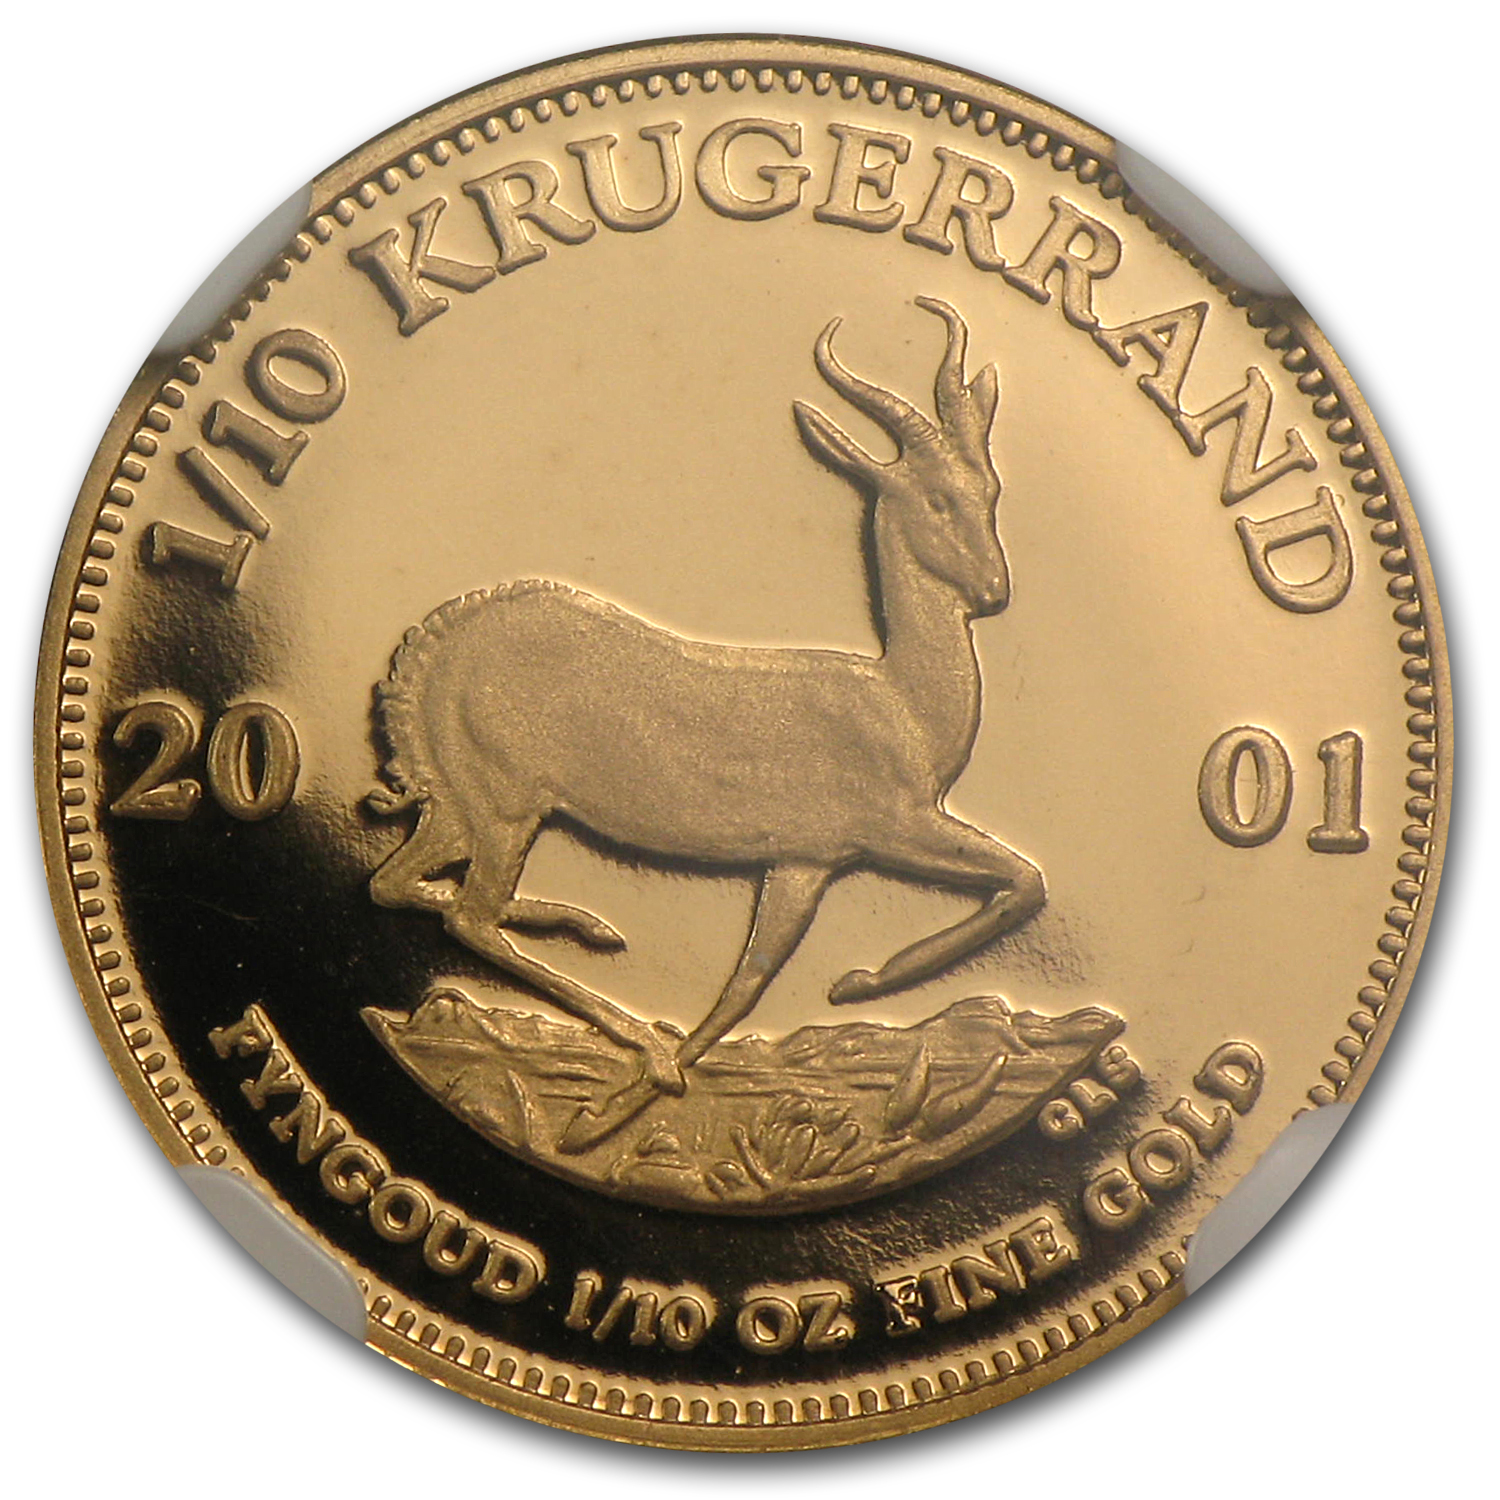 2001 South Africa 1/10 oz Gold Krugerrand PF-69 NGC